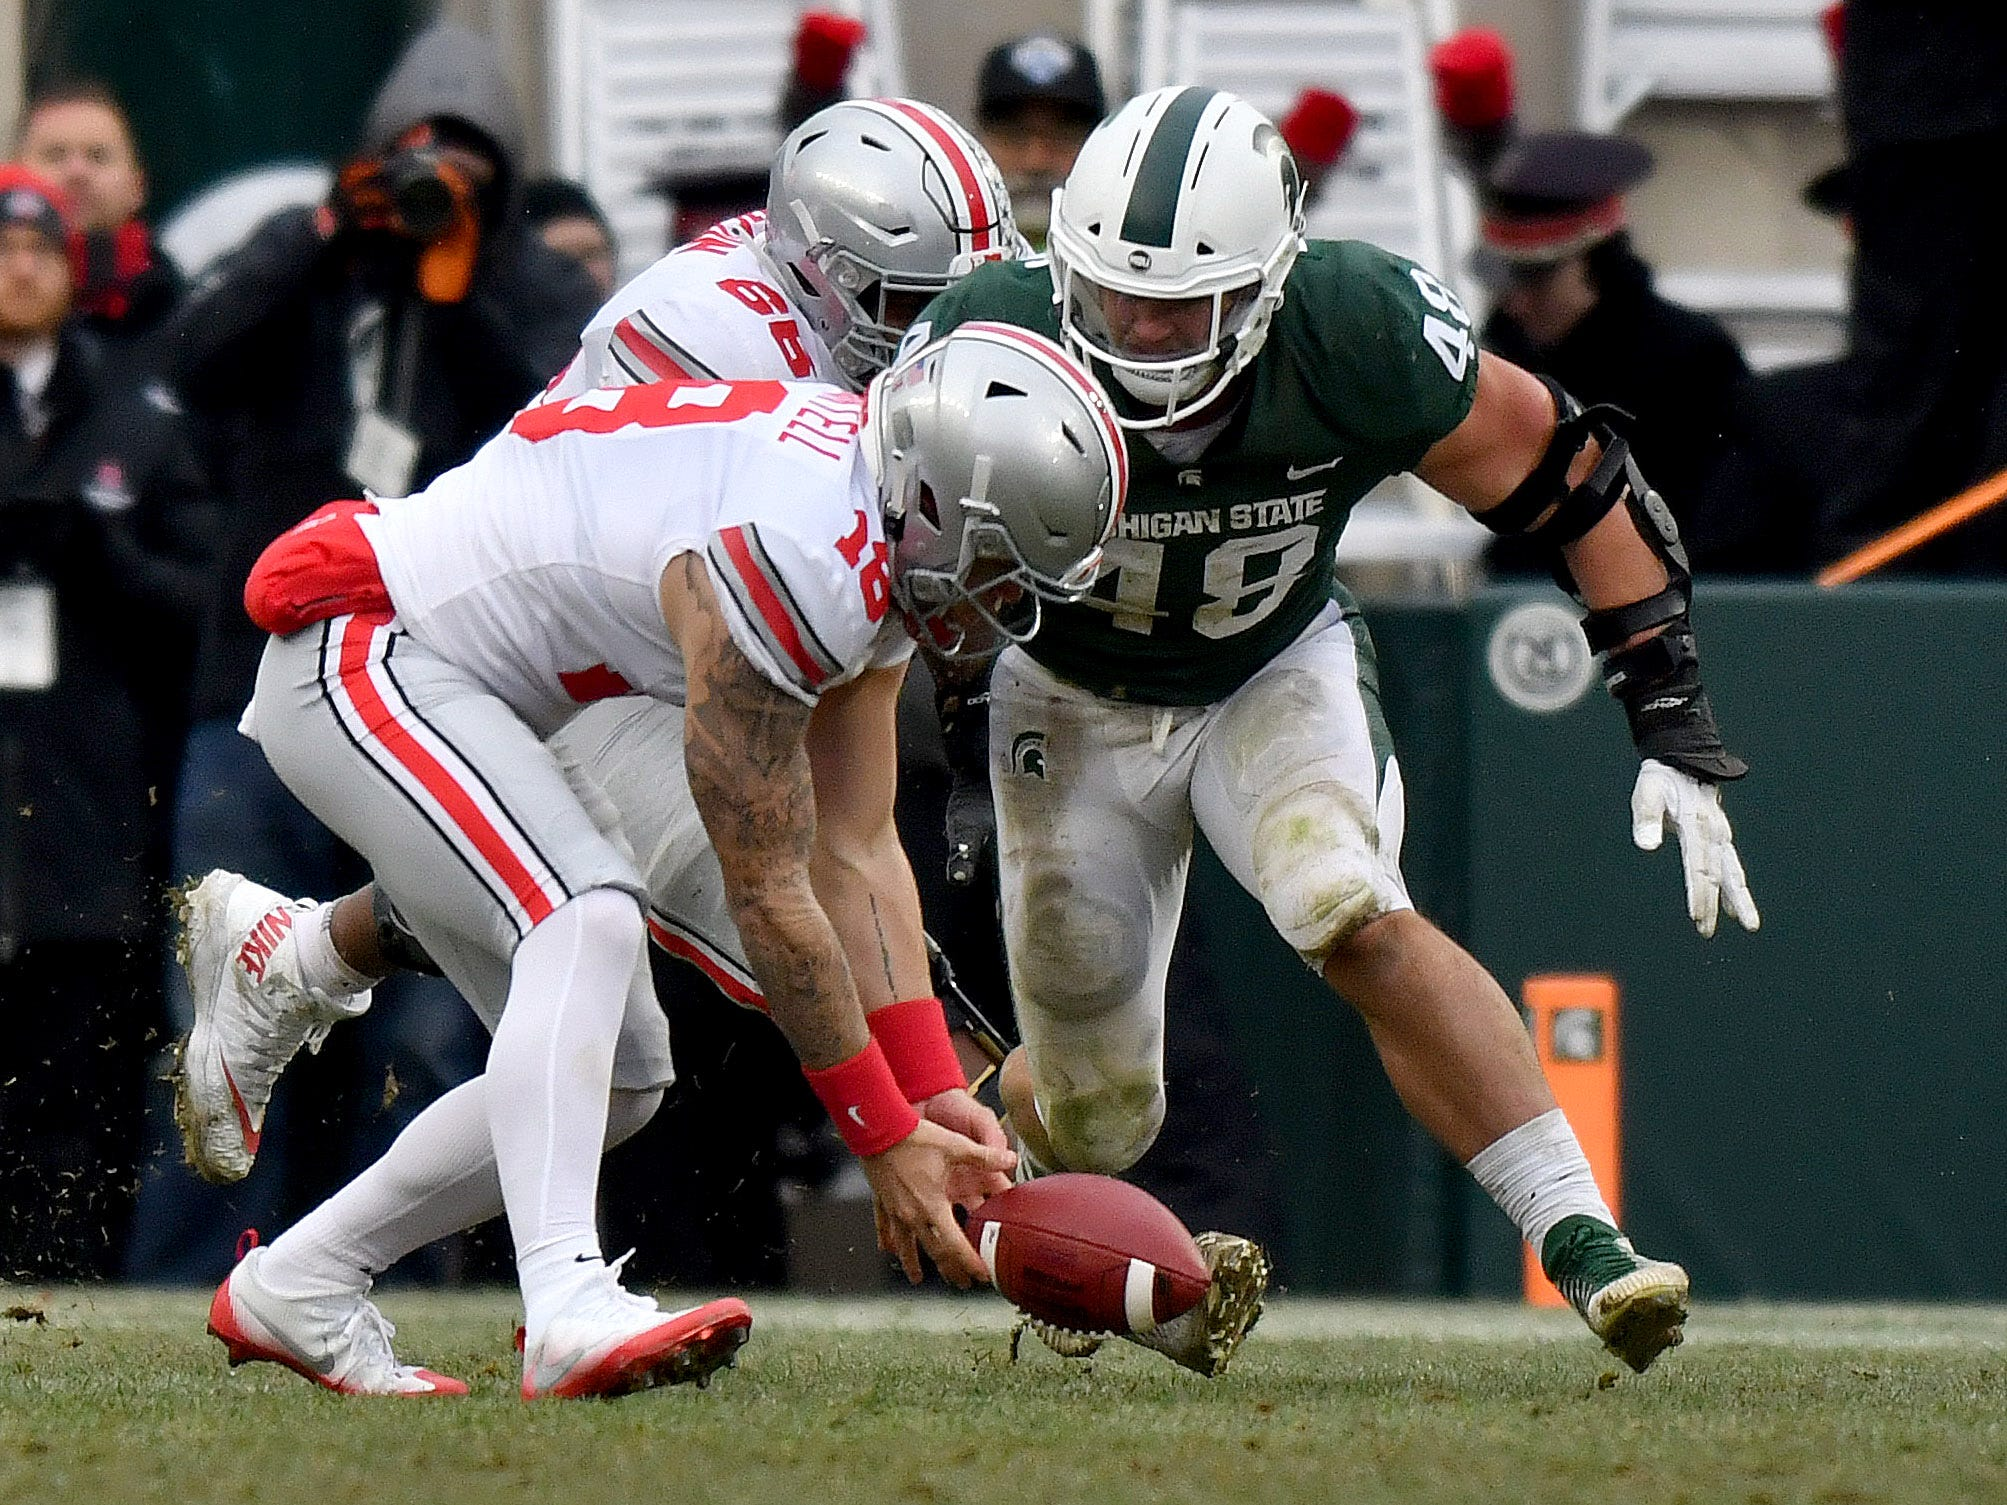 Buckeye quarterback Tate Martell fumbles the ball under pressure from Kenny Willekes in the fourth quarter and the Spartans recover it.